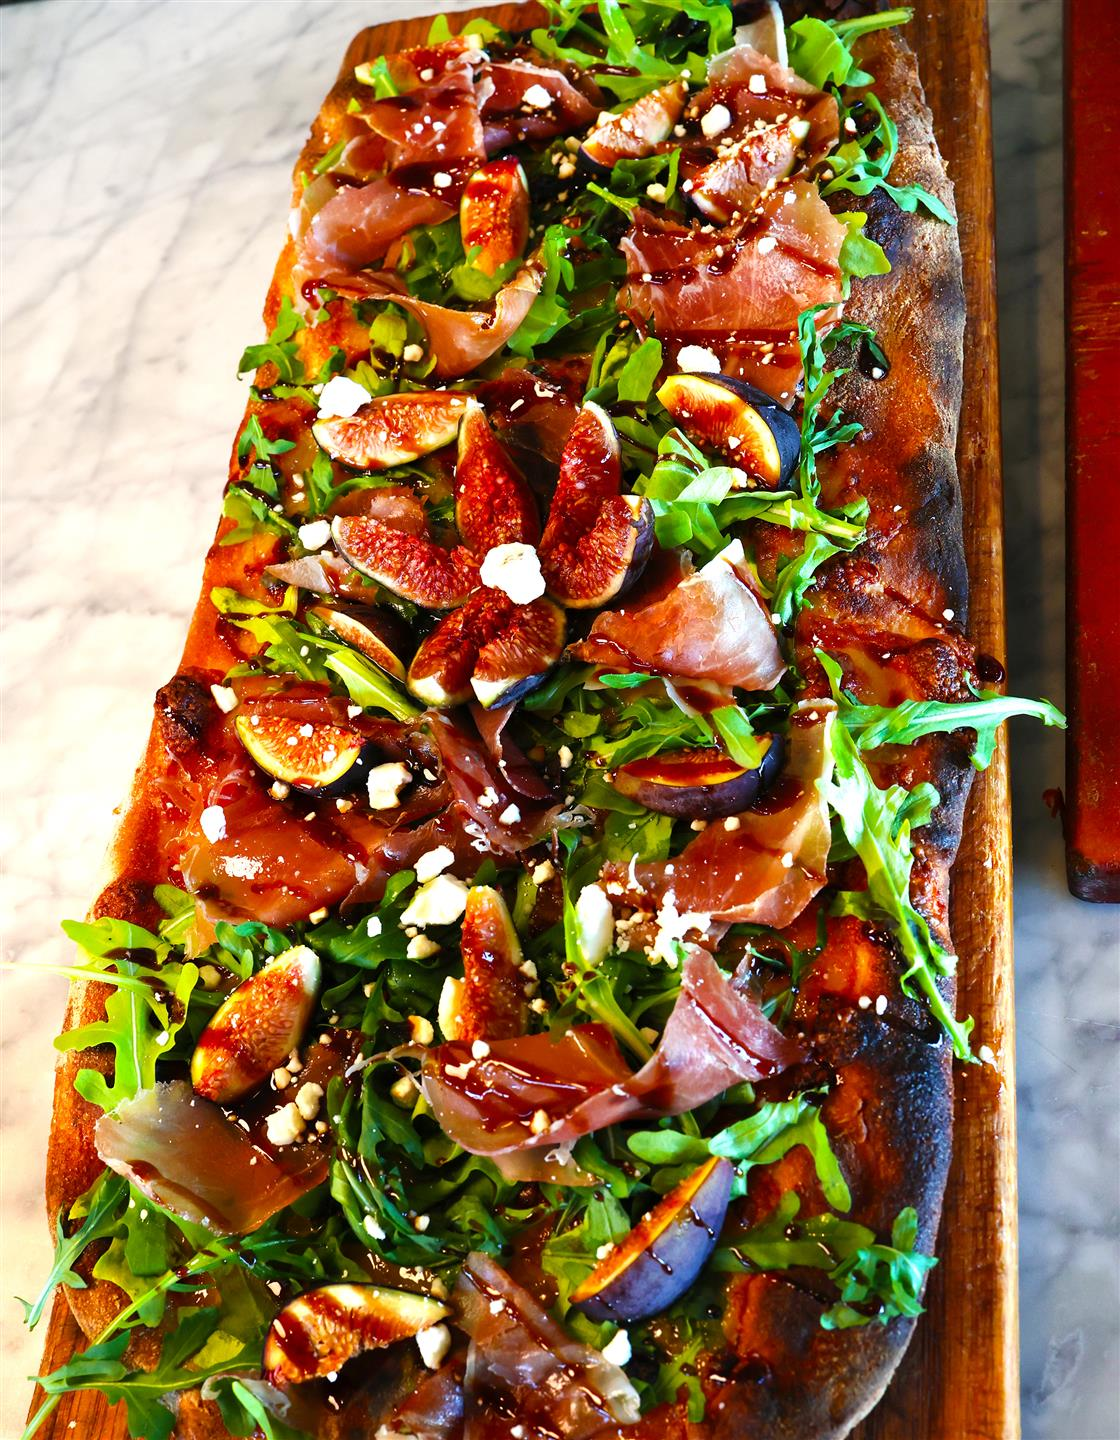 flatbread with arugula, Prosciutto, eggplant, and sprinkled cheese